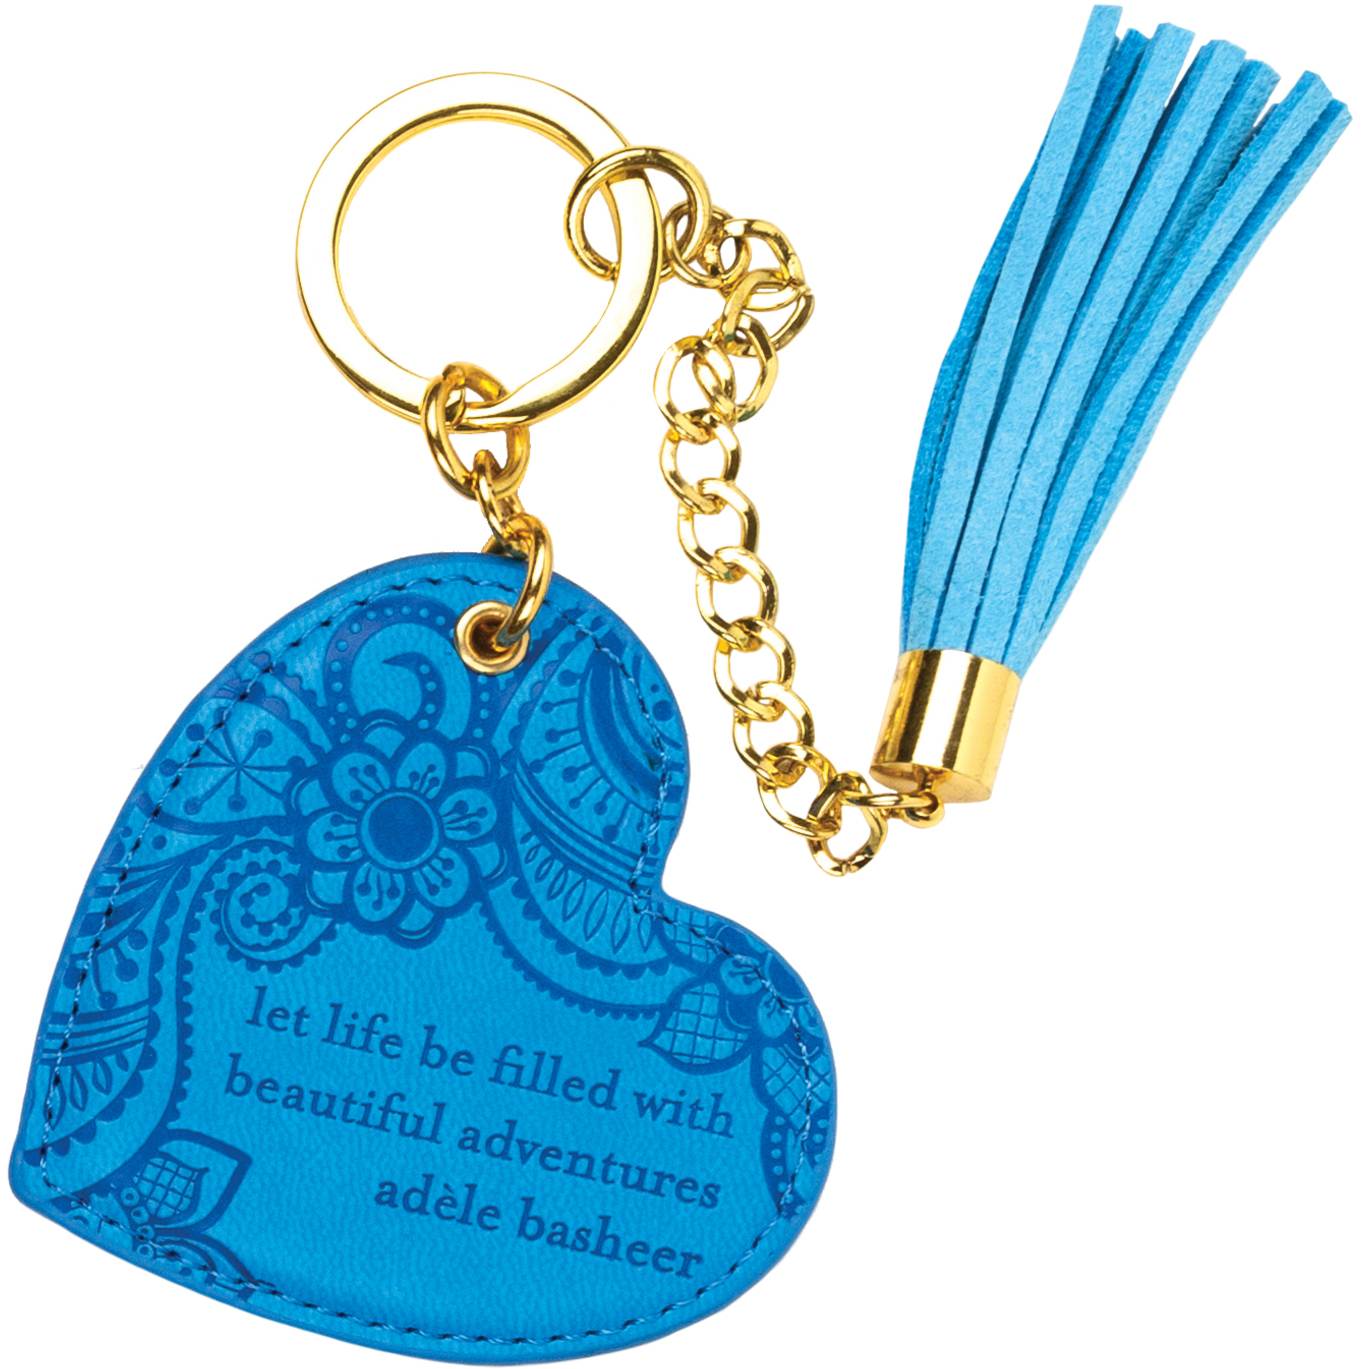 Amalfi Blue by Intrinsic - Amalfi Blue - Vegan Leather Keychain